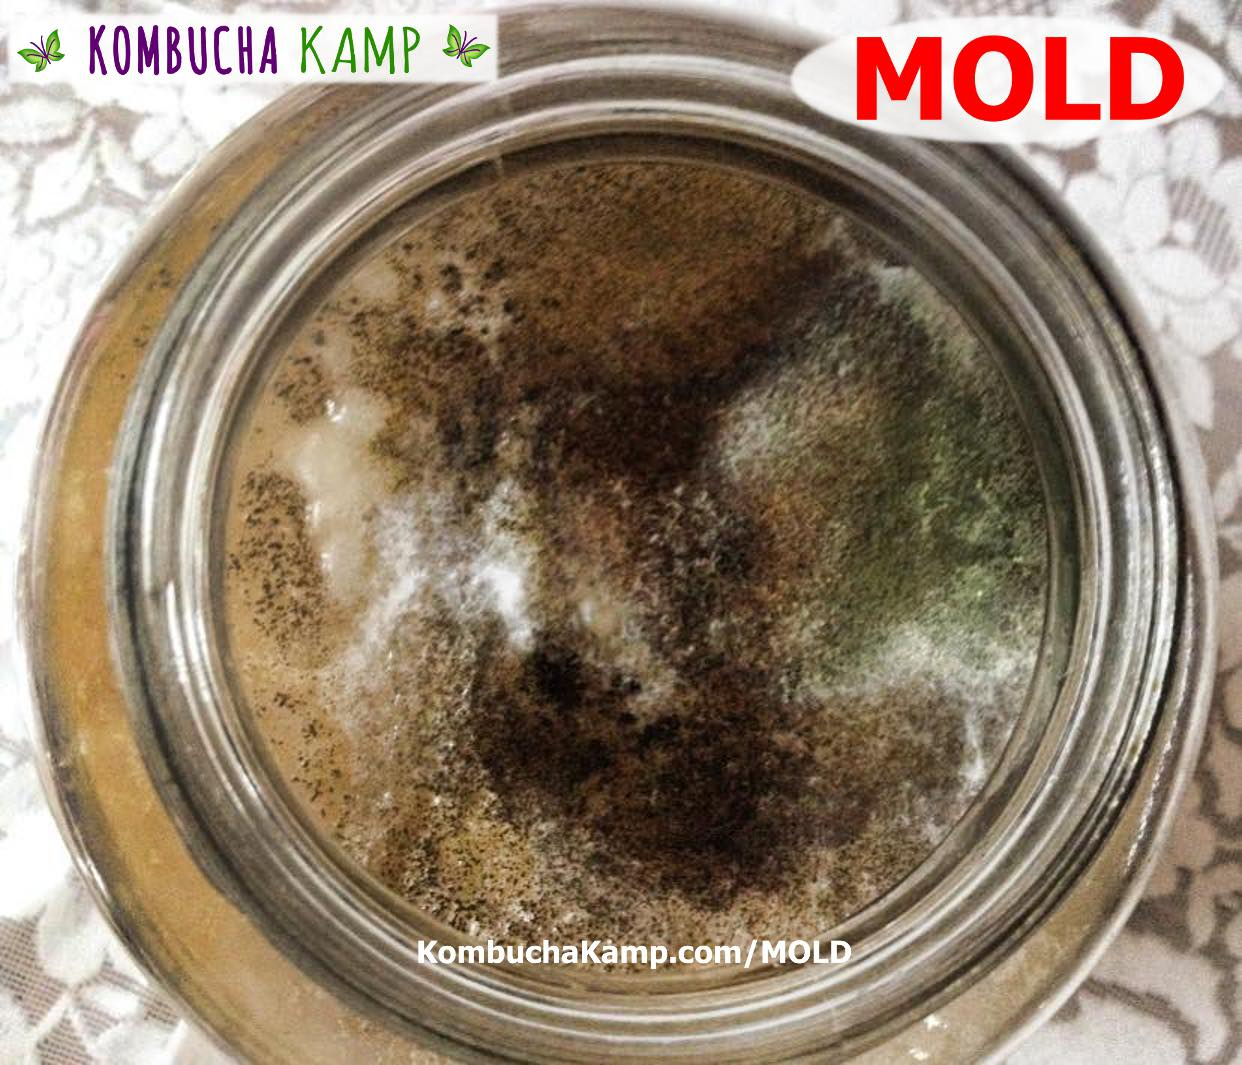 How to identify black mold - How To Identify Black Mold 55